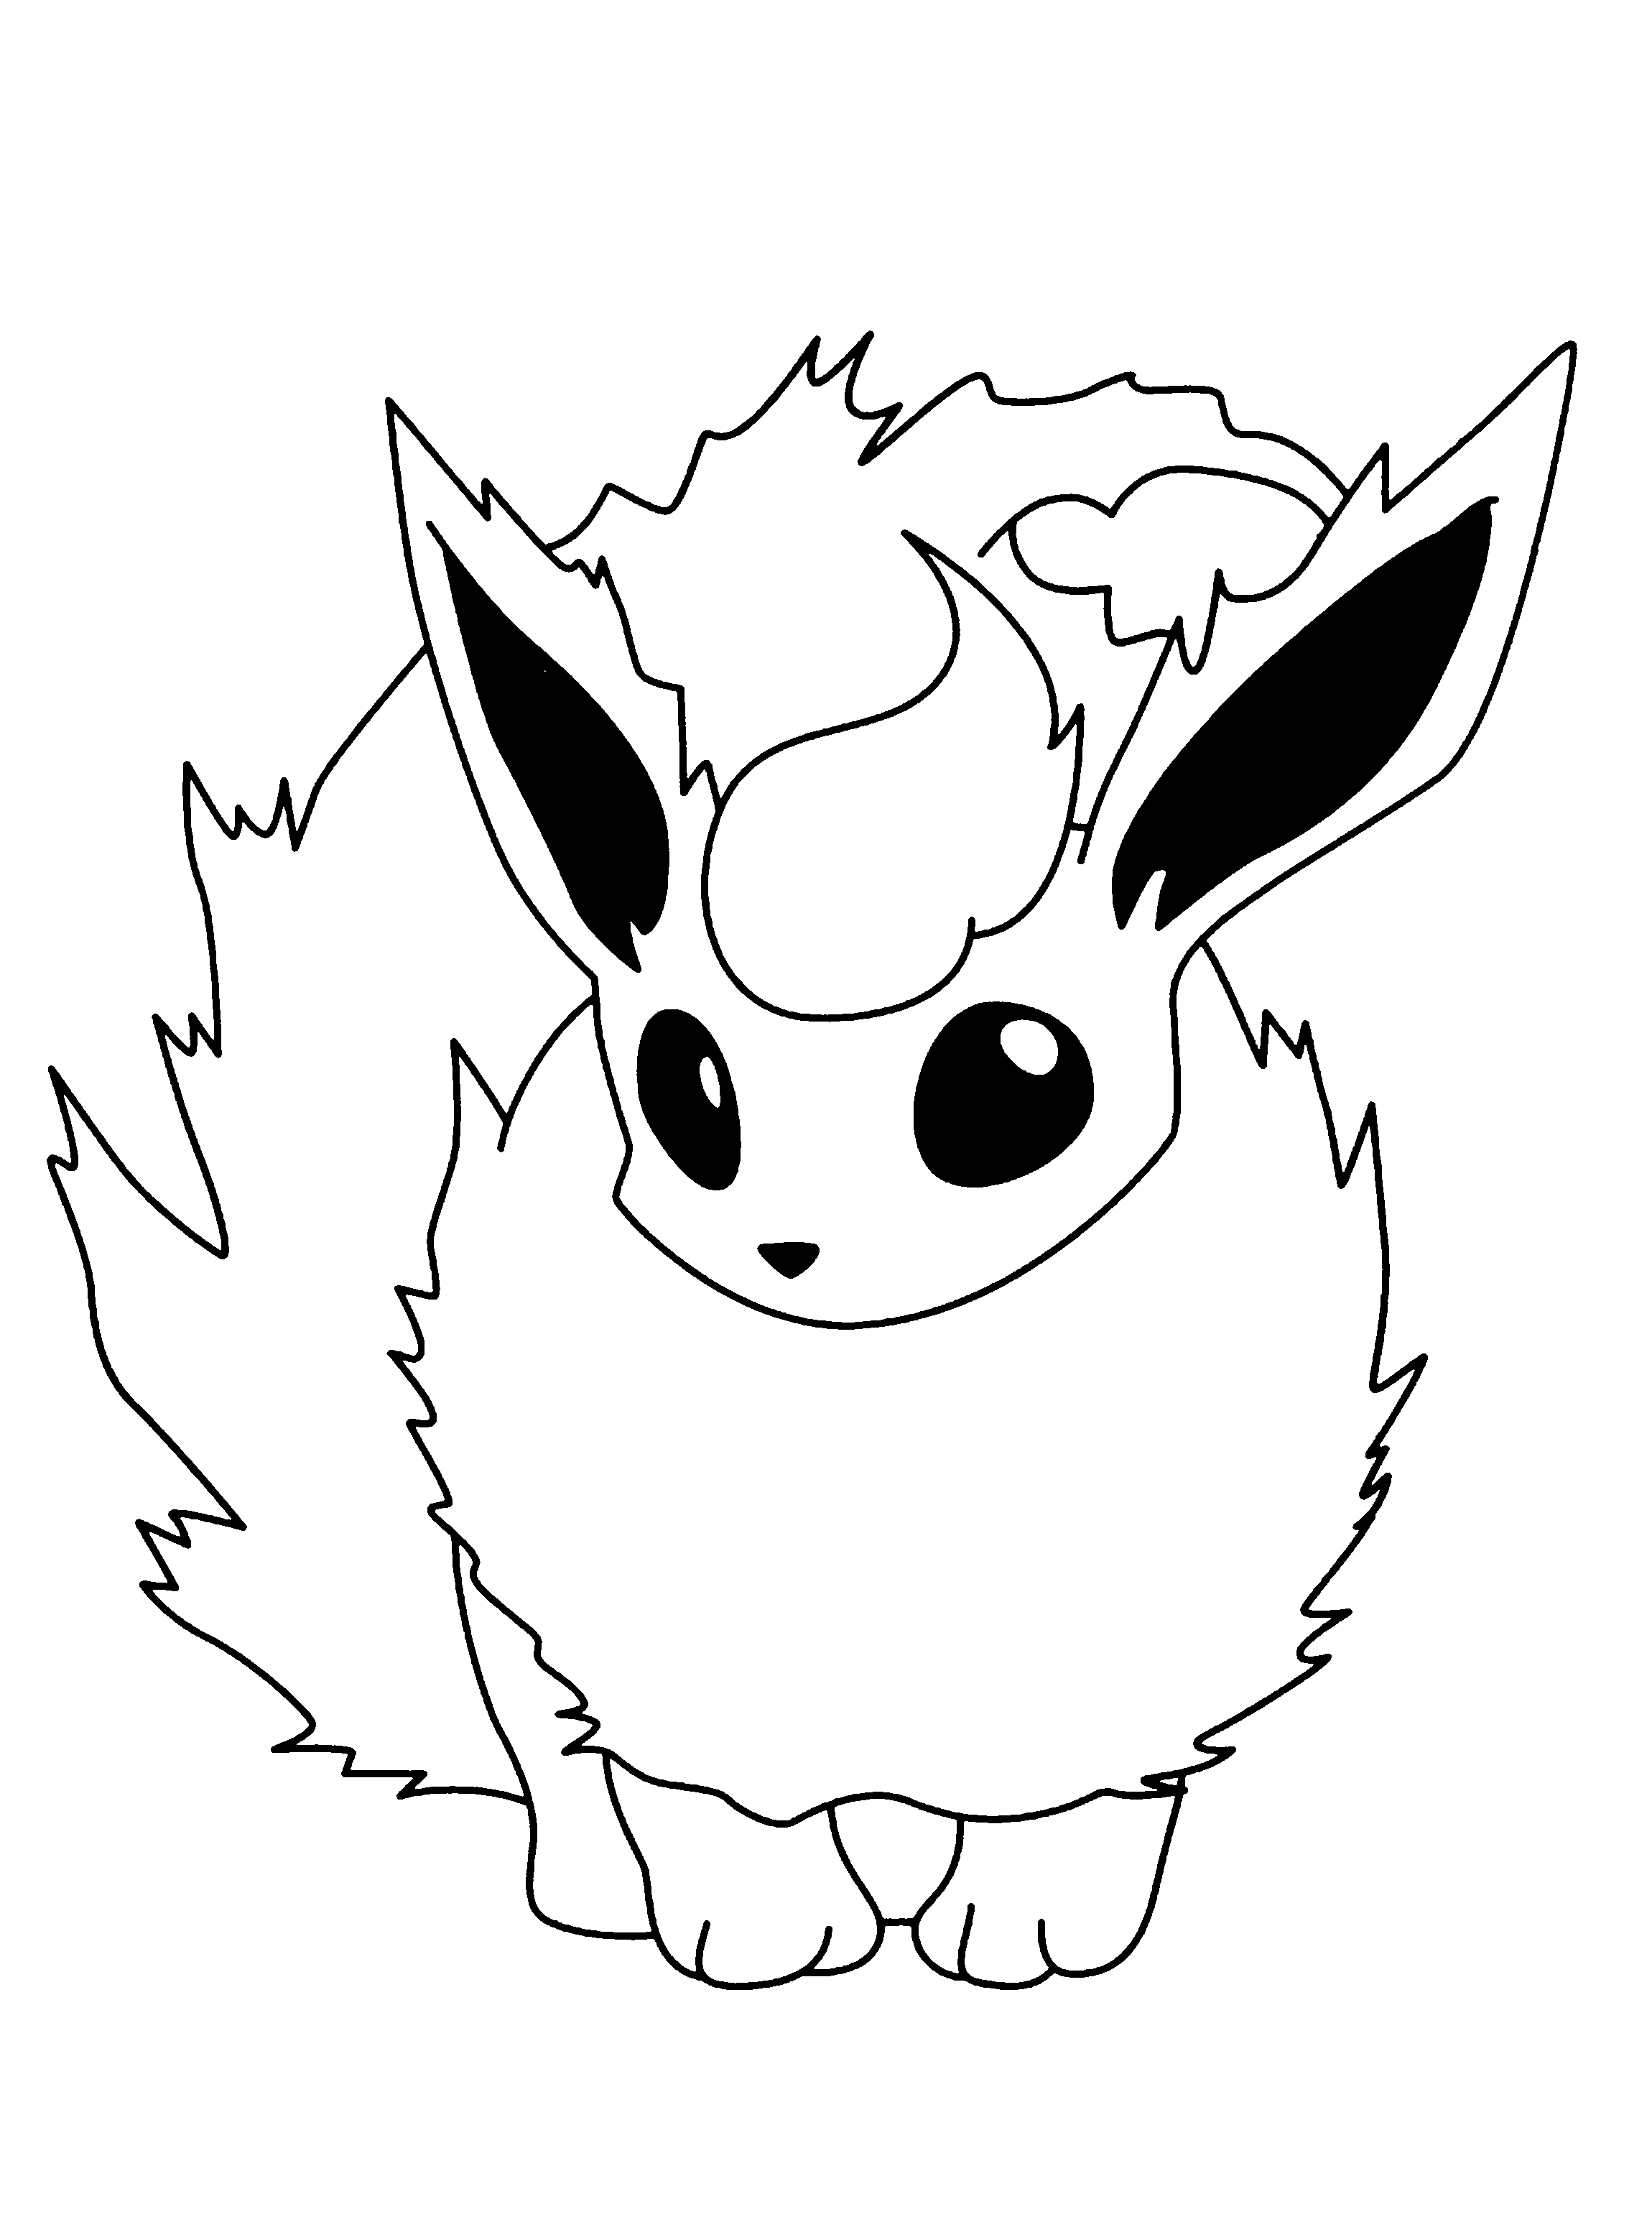 pokemon pitchers pokemon coloring pages join your favorite pokemon on an pitchers pokemon